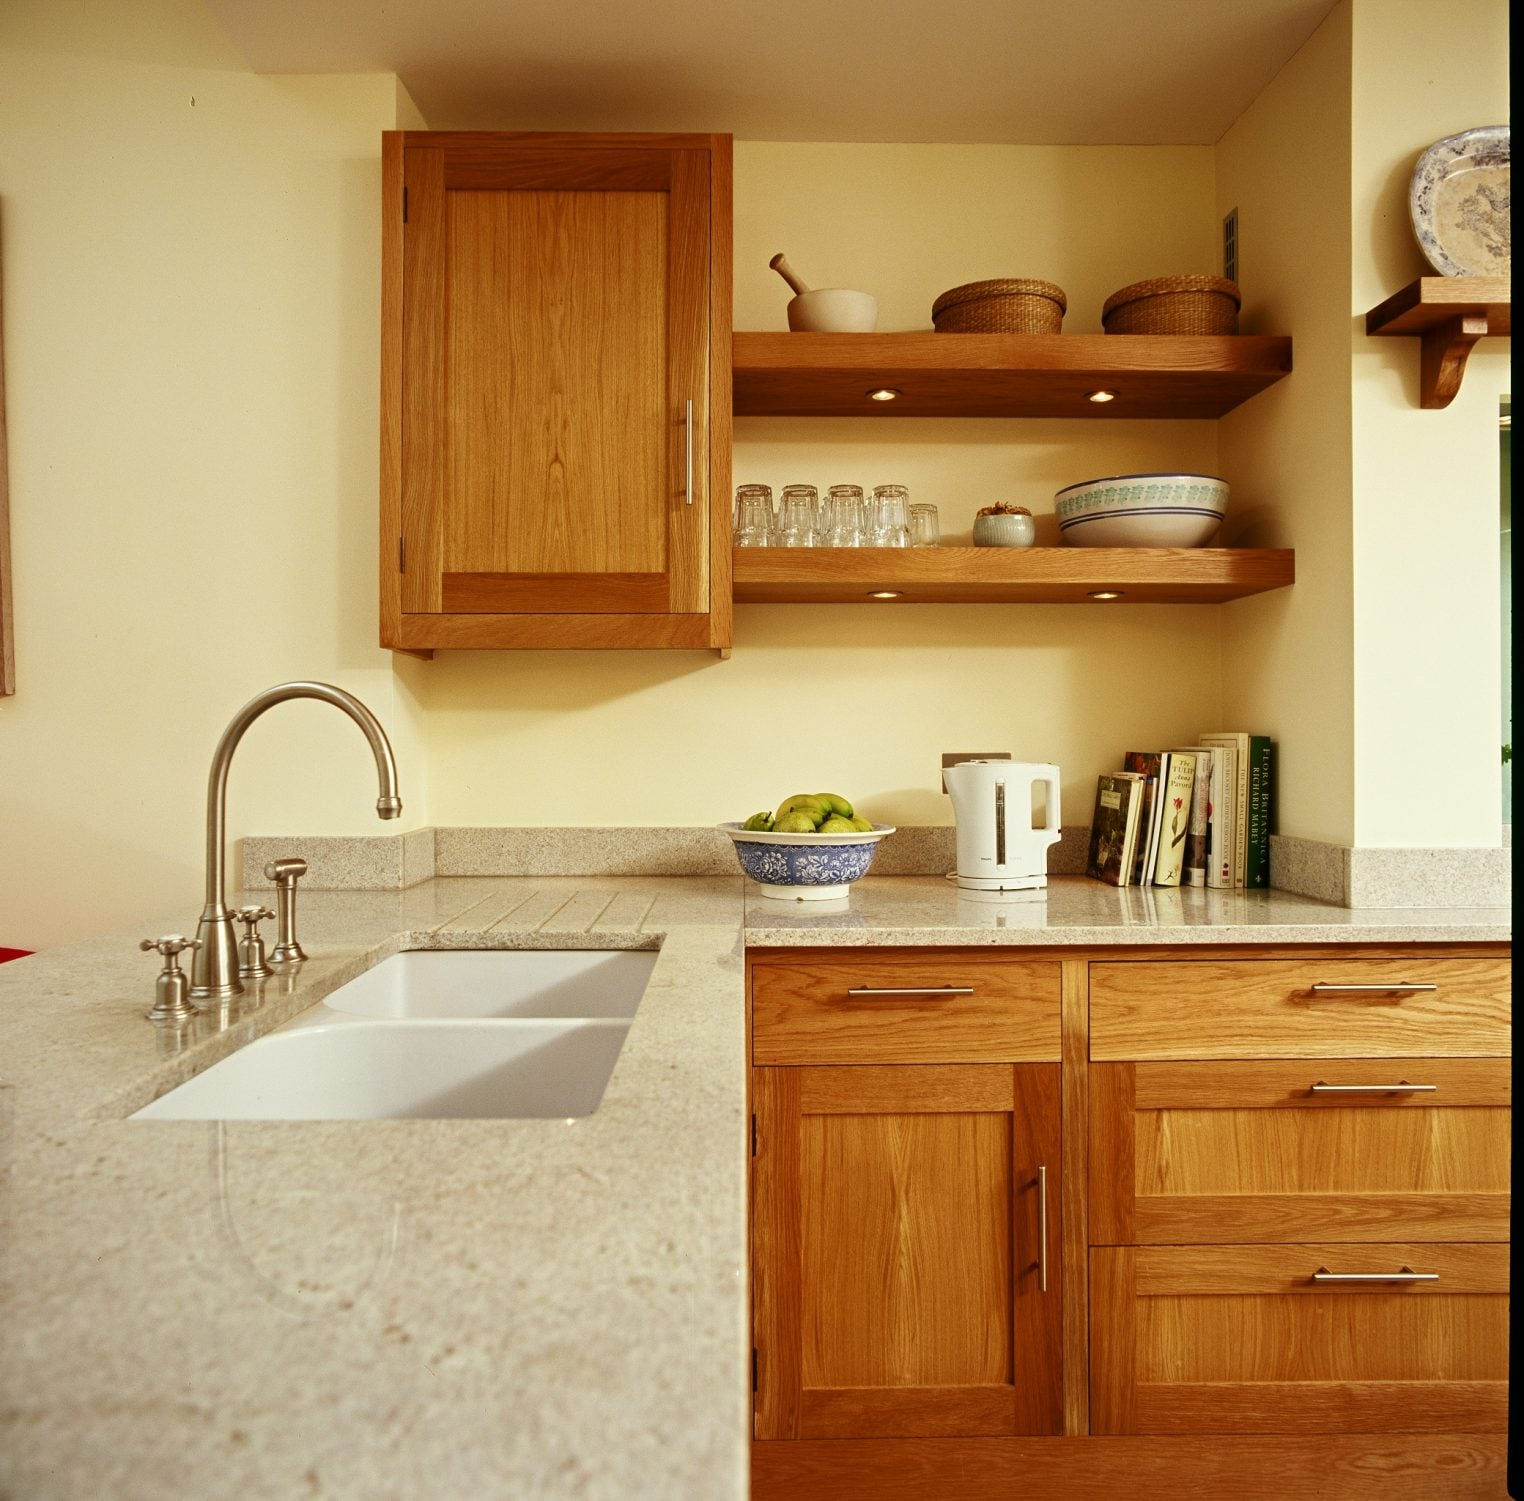 A traditional country oak bespoke kitchen